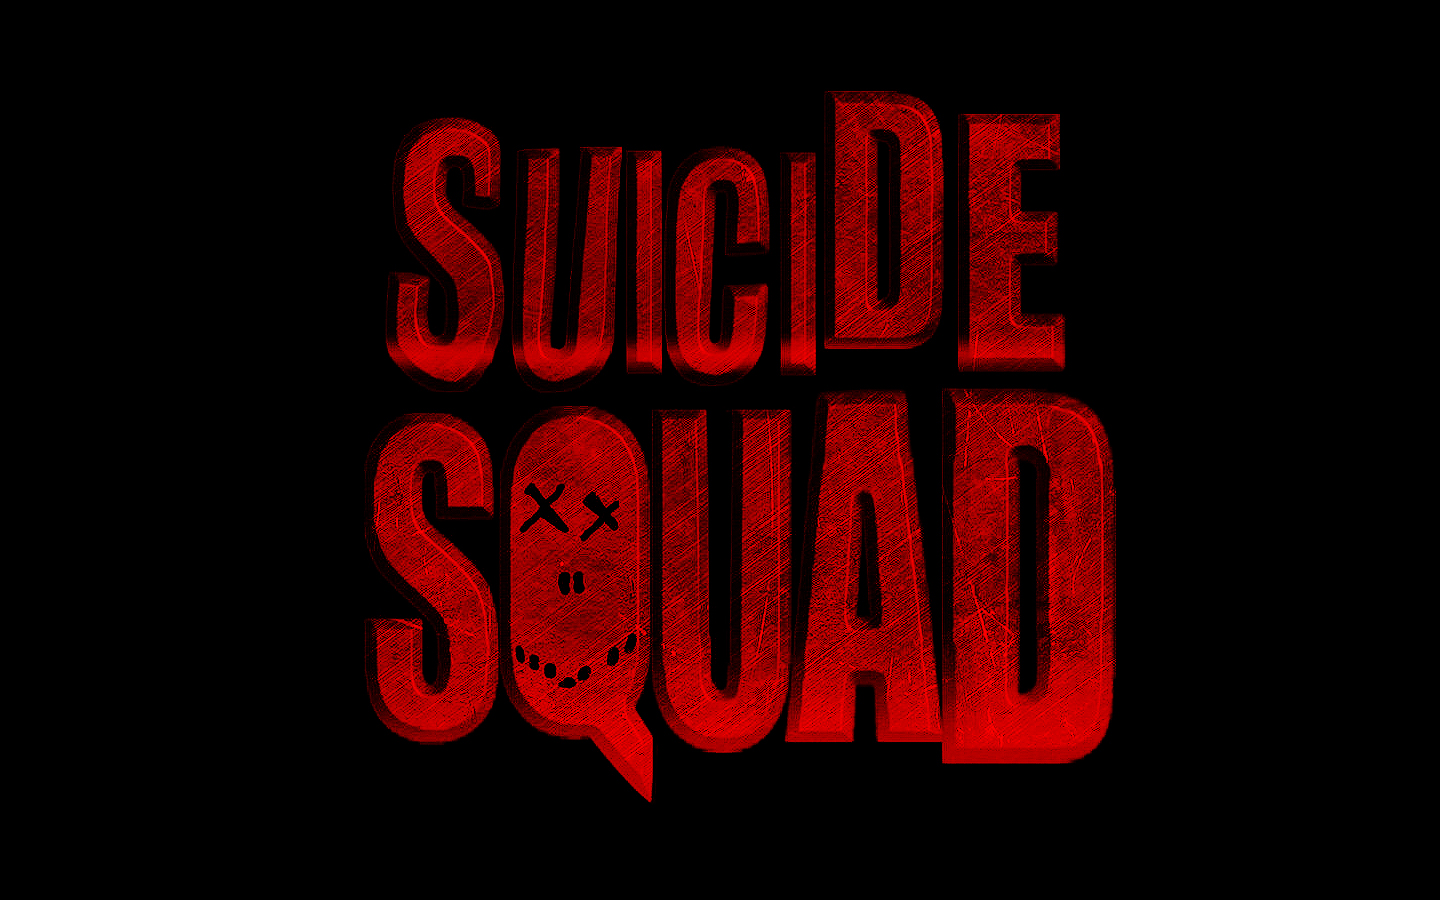 Suicide Squad Wallpaper   HD Wallpapers Backgrounds of Your Choice 1440x900